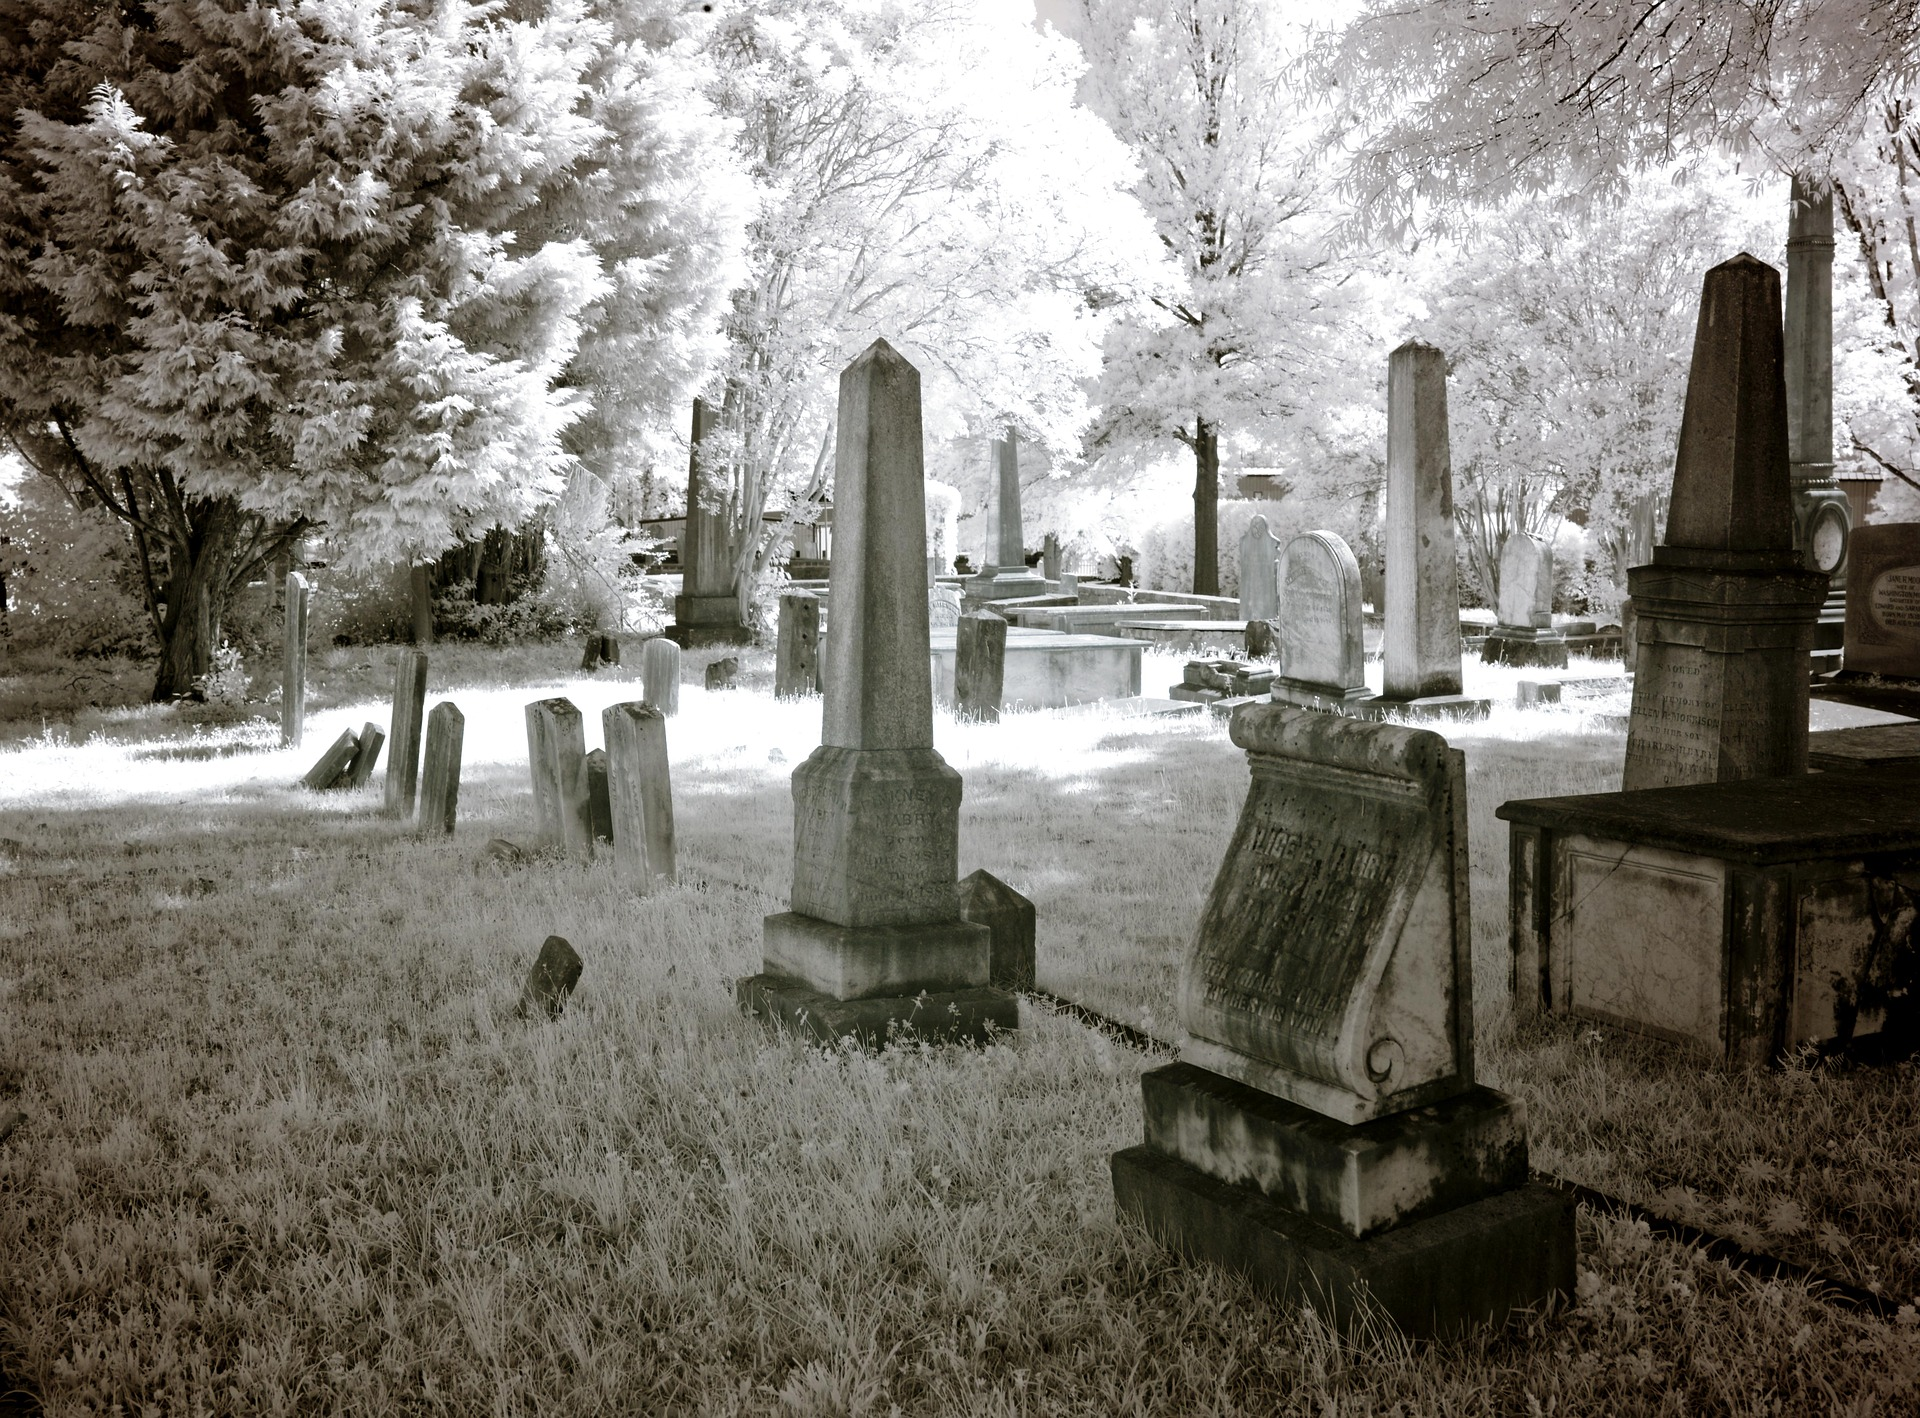 In the cemetery photo